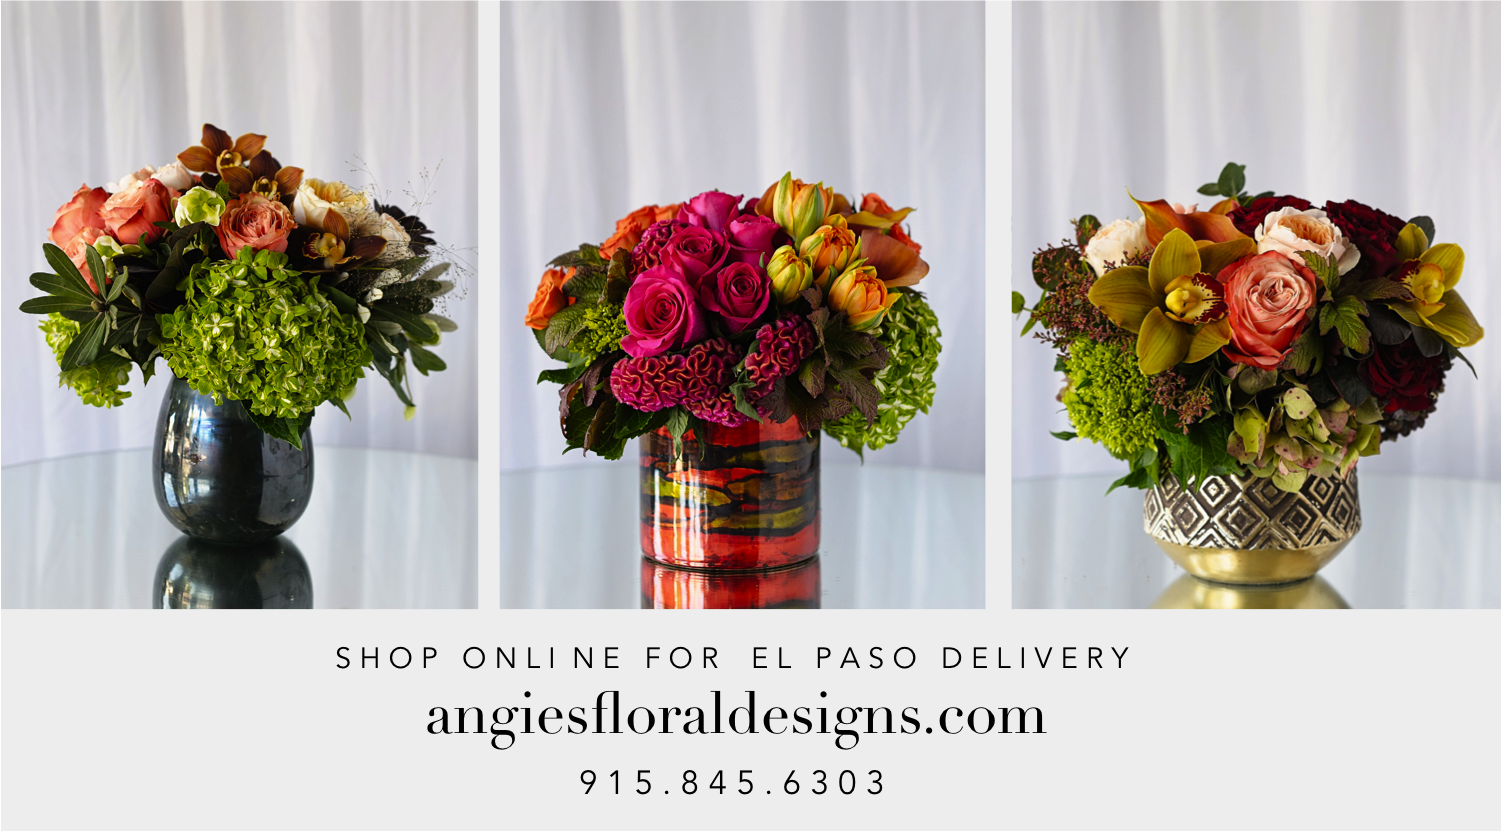 -.-a-ngies-floral-designs-el-paso-angie-s-flowers-el-paso-texas-business-accounts-floral-designs-plants-gifts-shopflores-online-el-paso-texas-florist-flower-delivery-weddings-events-79912.png